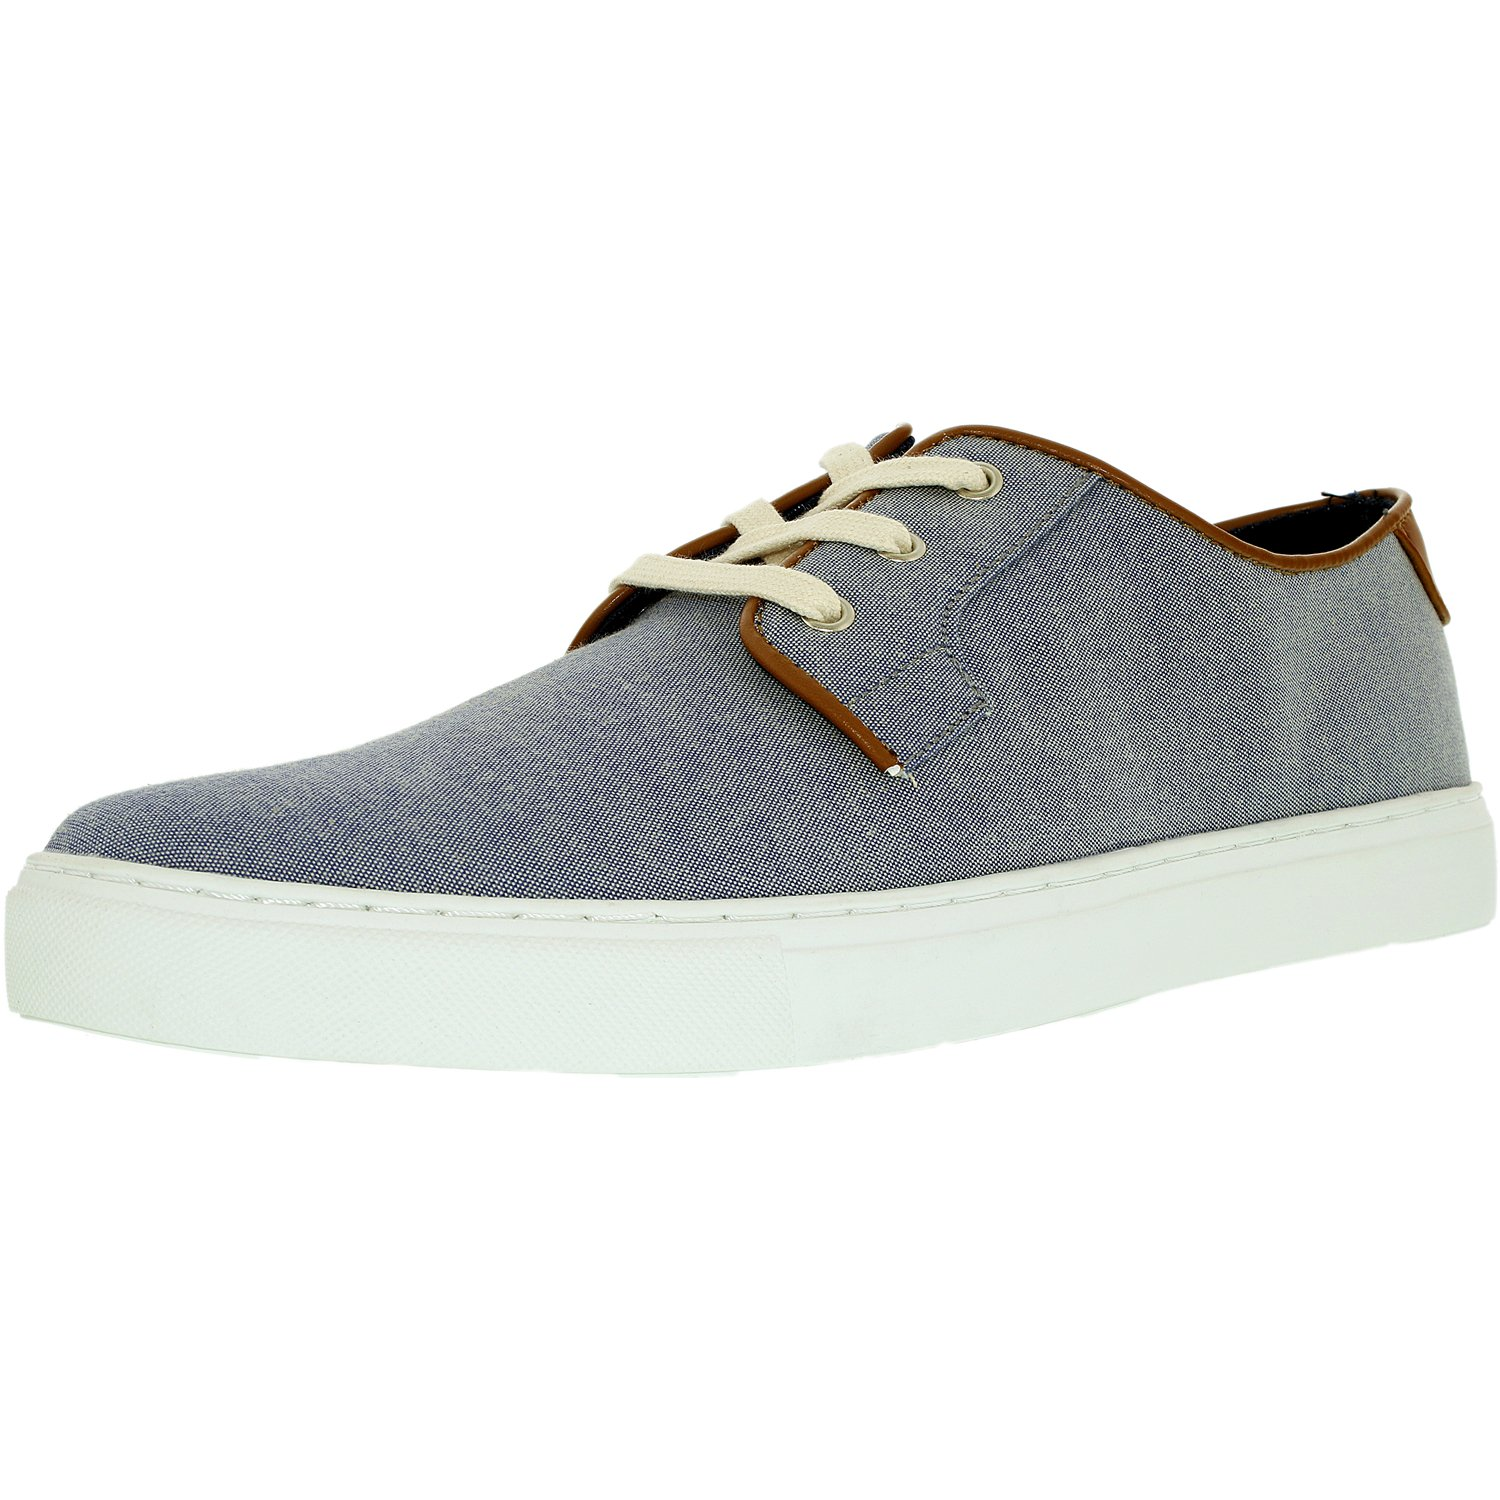 faaa08992452d Tommy Hilfiger Men s Mckenzie 2 Fabric Dark Grey Ankle-High Fashion Sneaker  - 8M